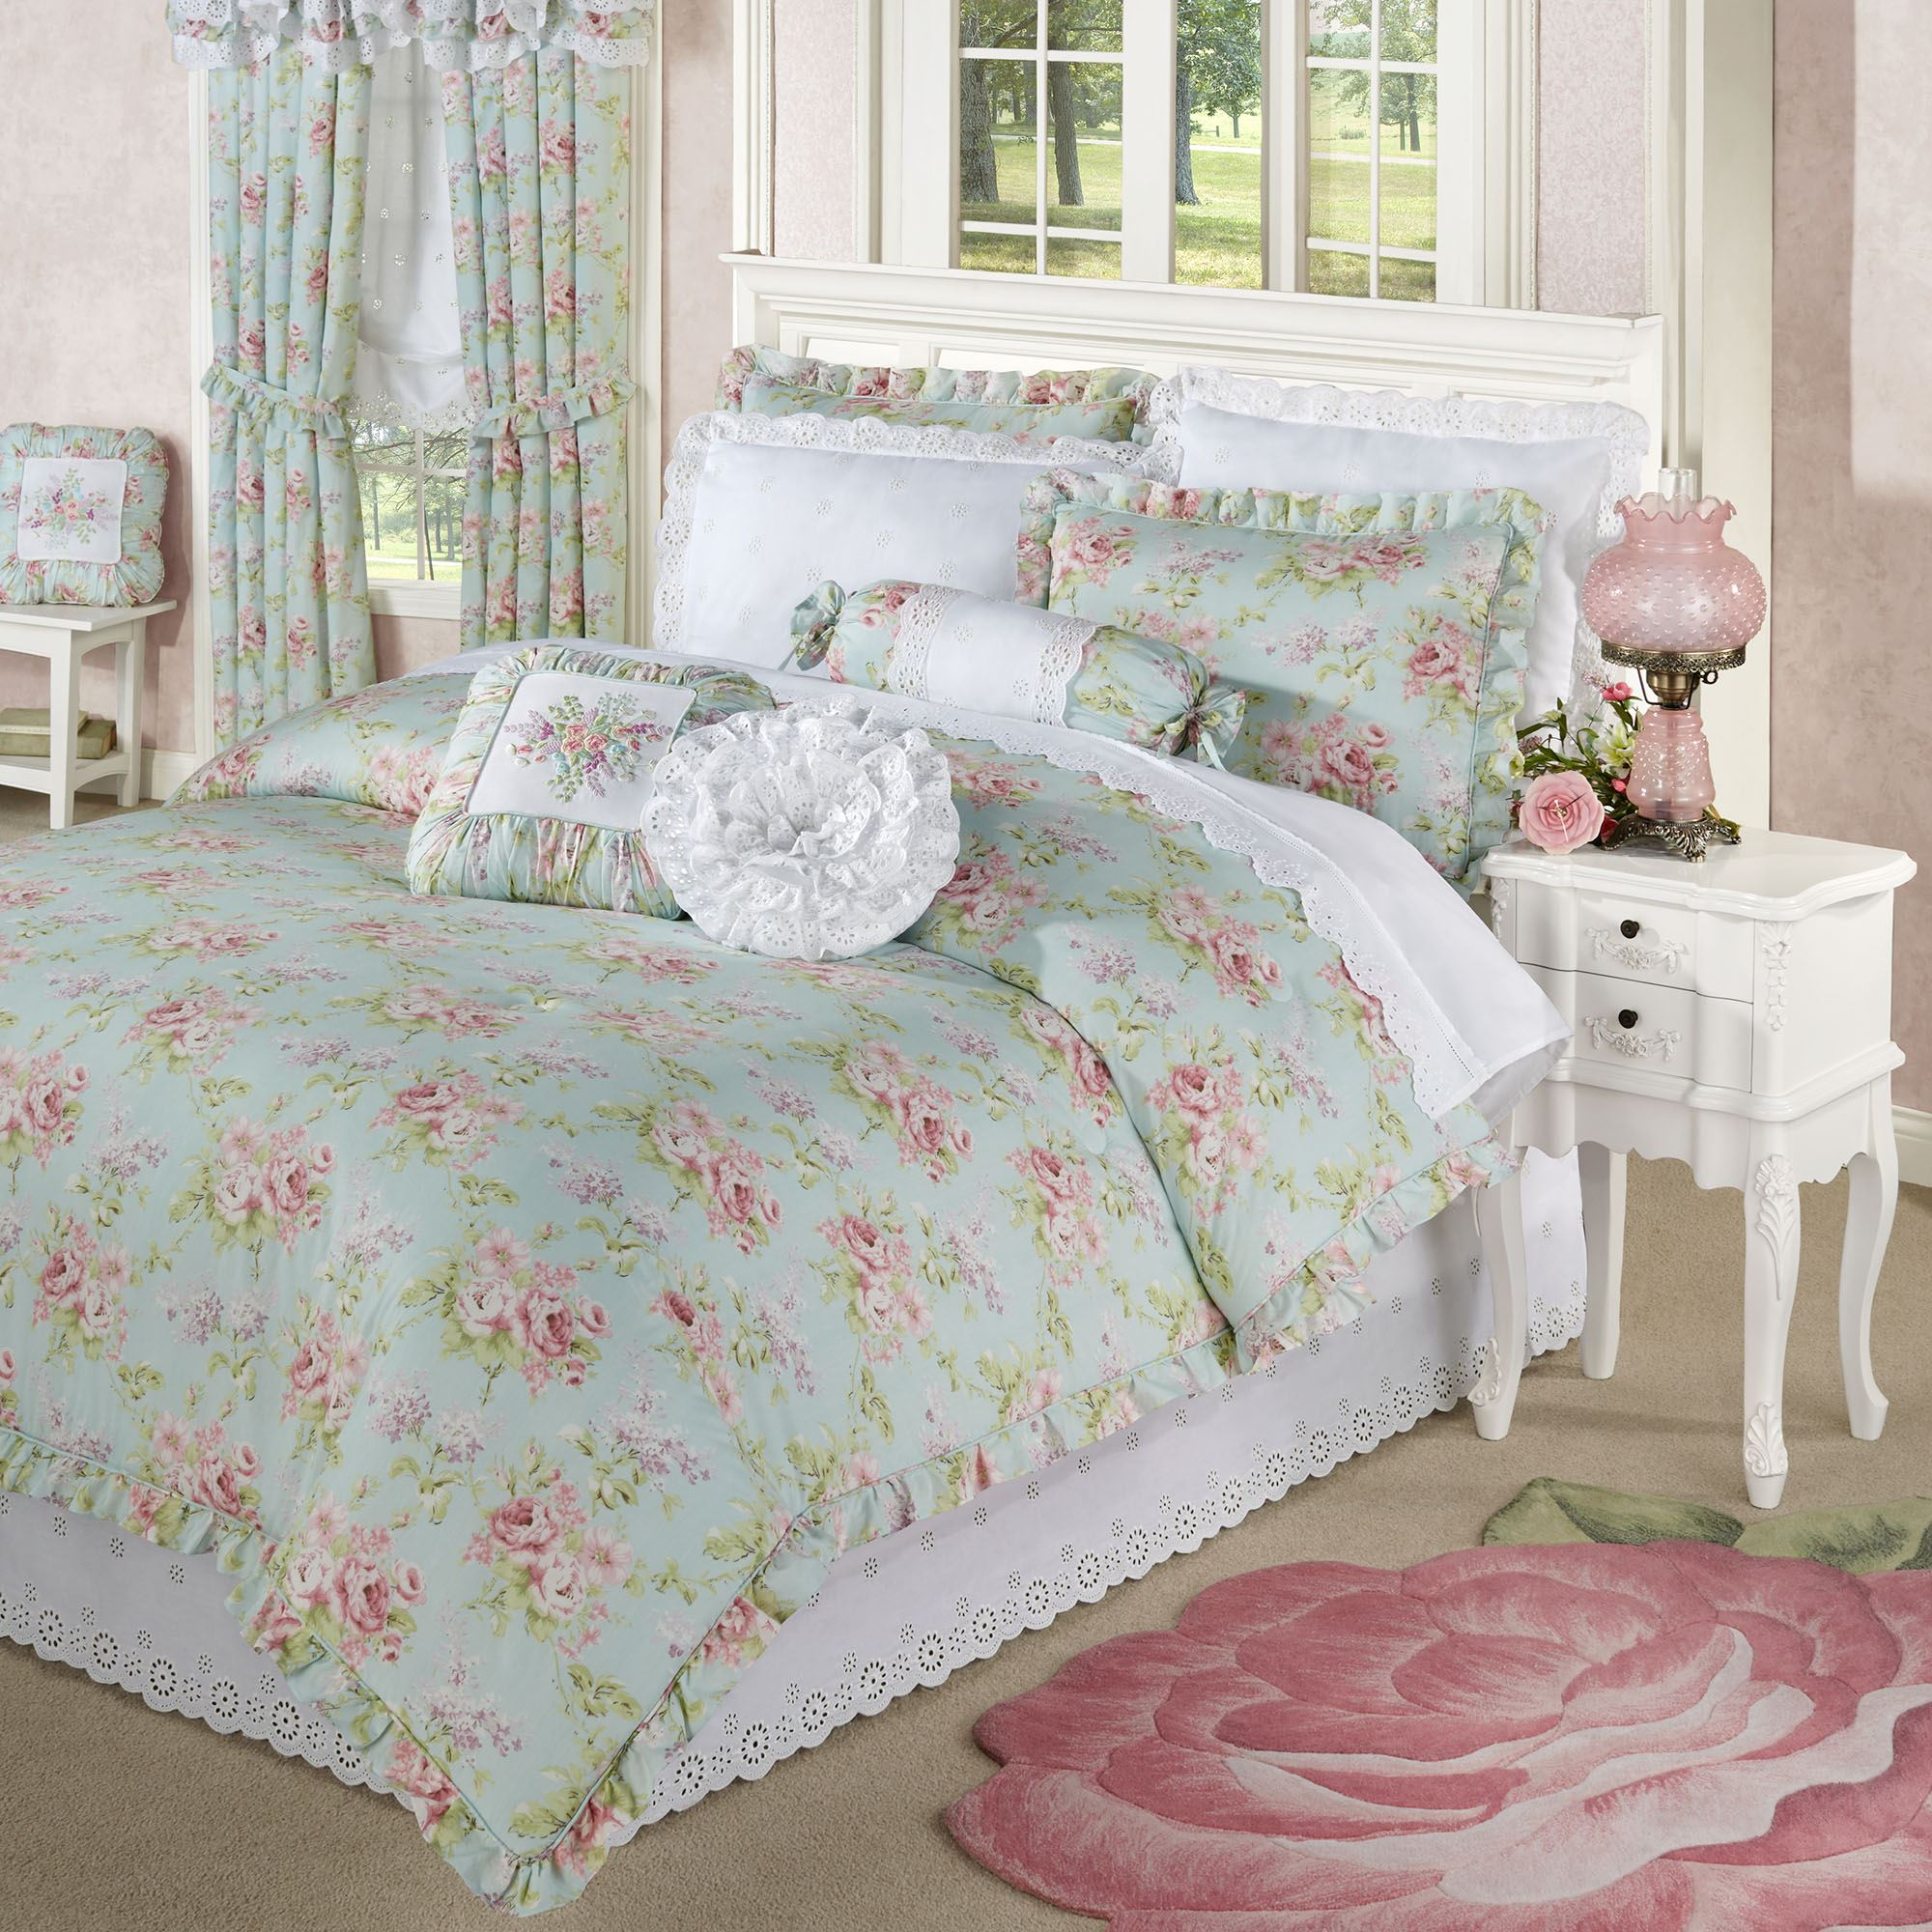 Cottage Rose Aqua Mist Floral Comforter Bedding